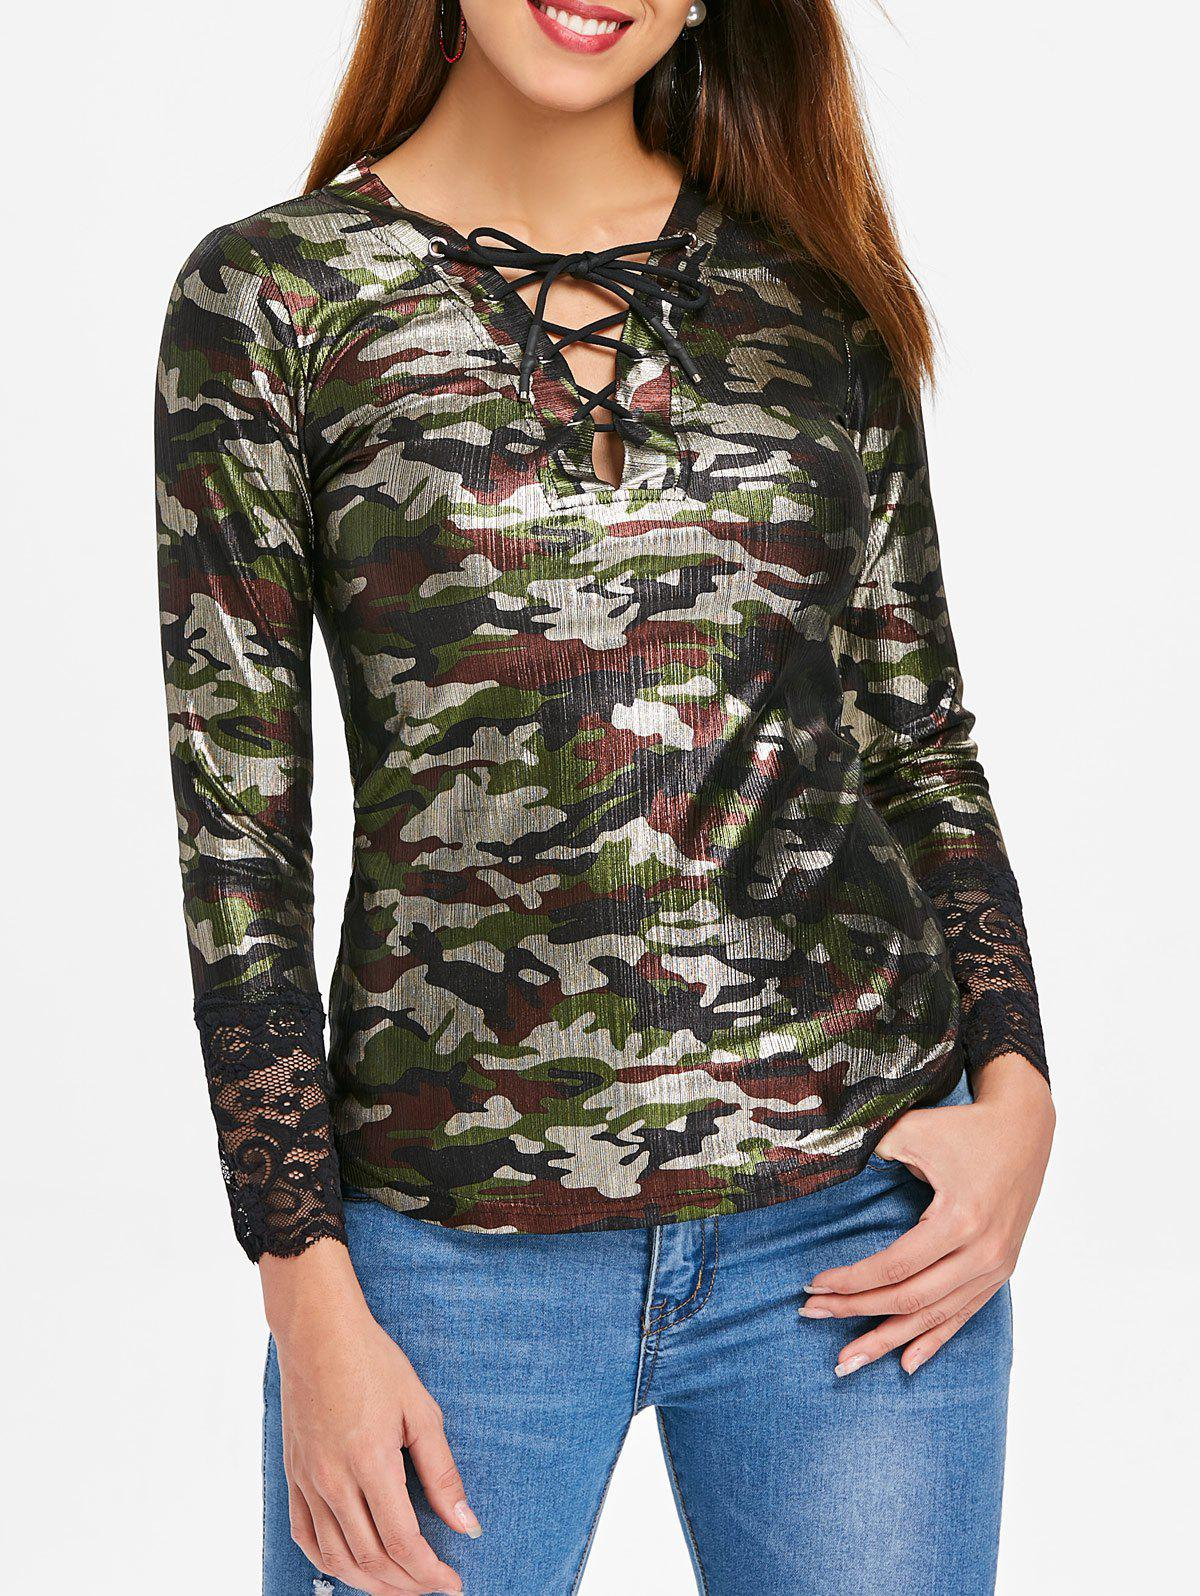 Store Long Sleeve Lace Up Camouflage Top